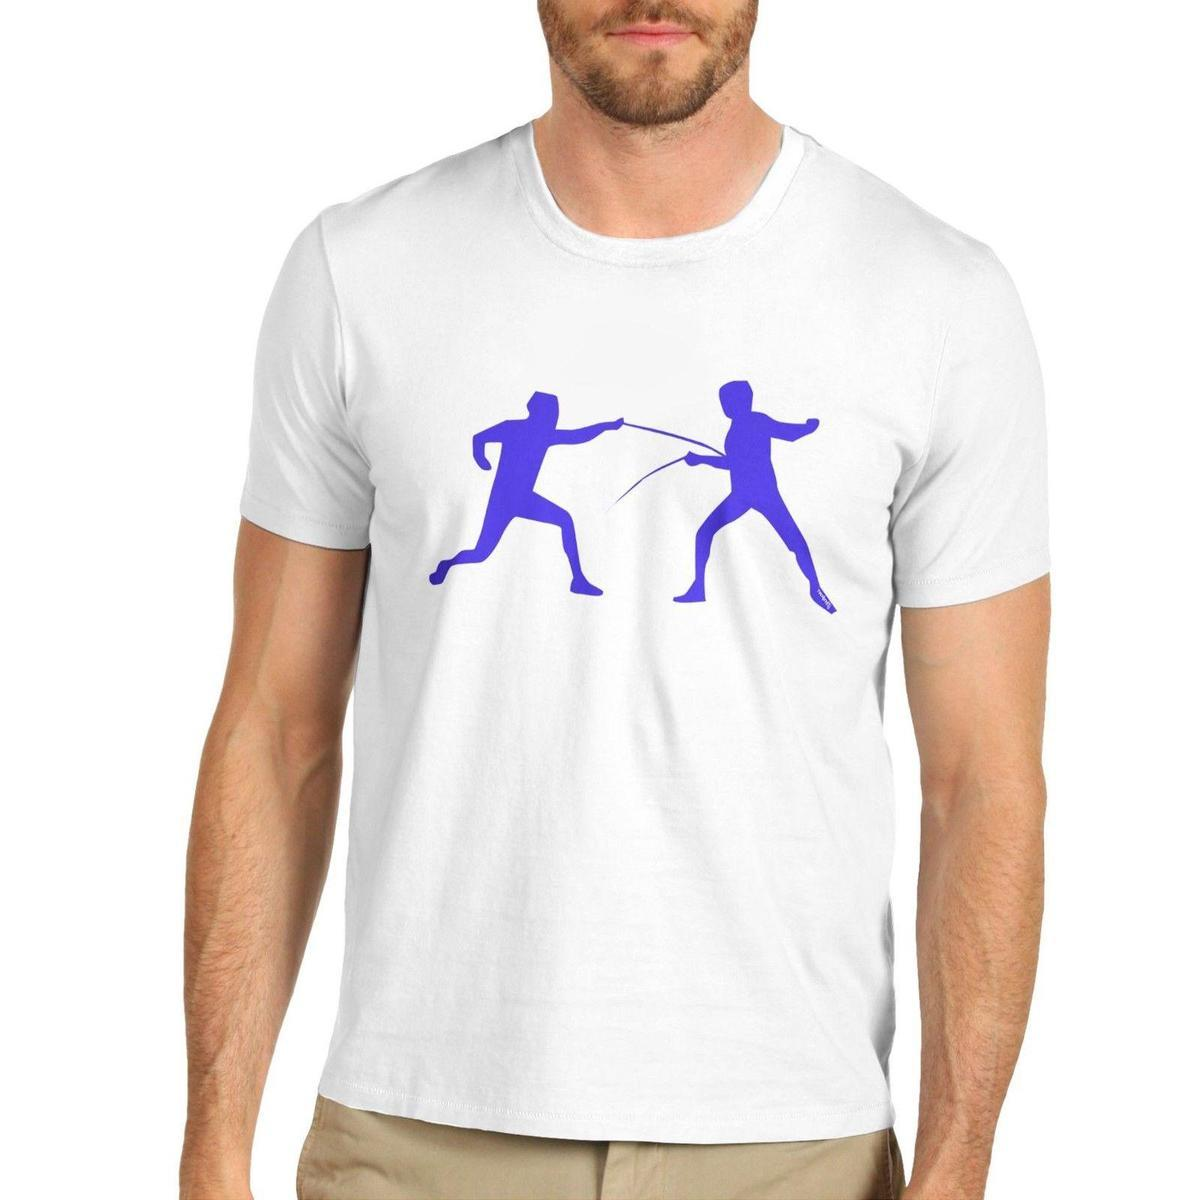 Mens Fencing Silhouette Graphic Sports Print T Shirt Tee Shirt